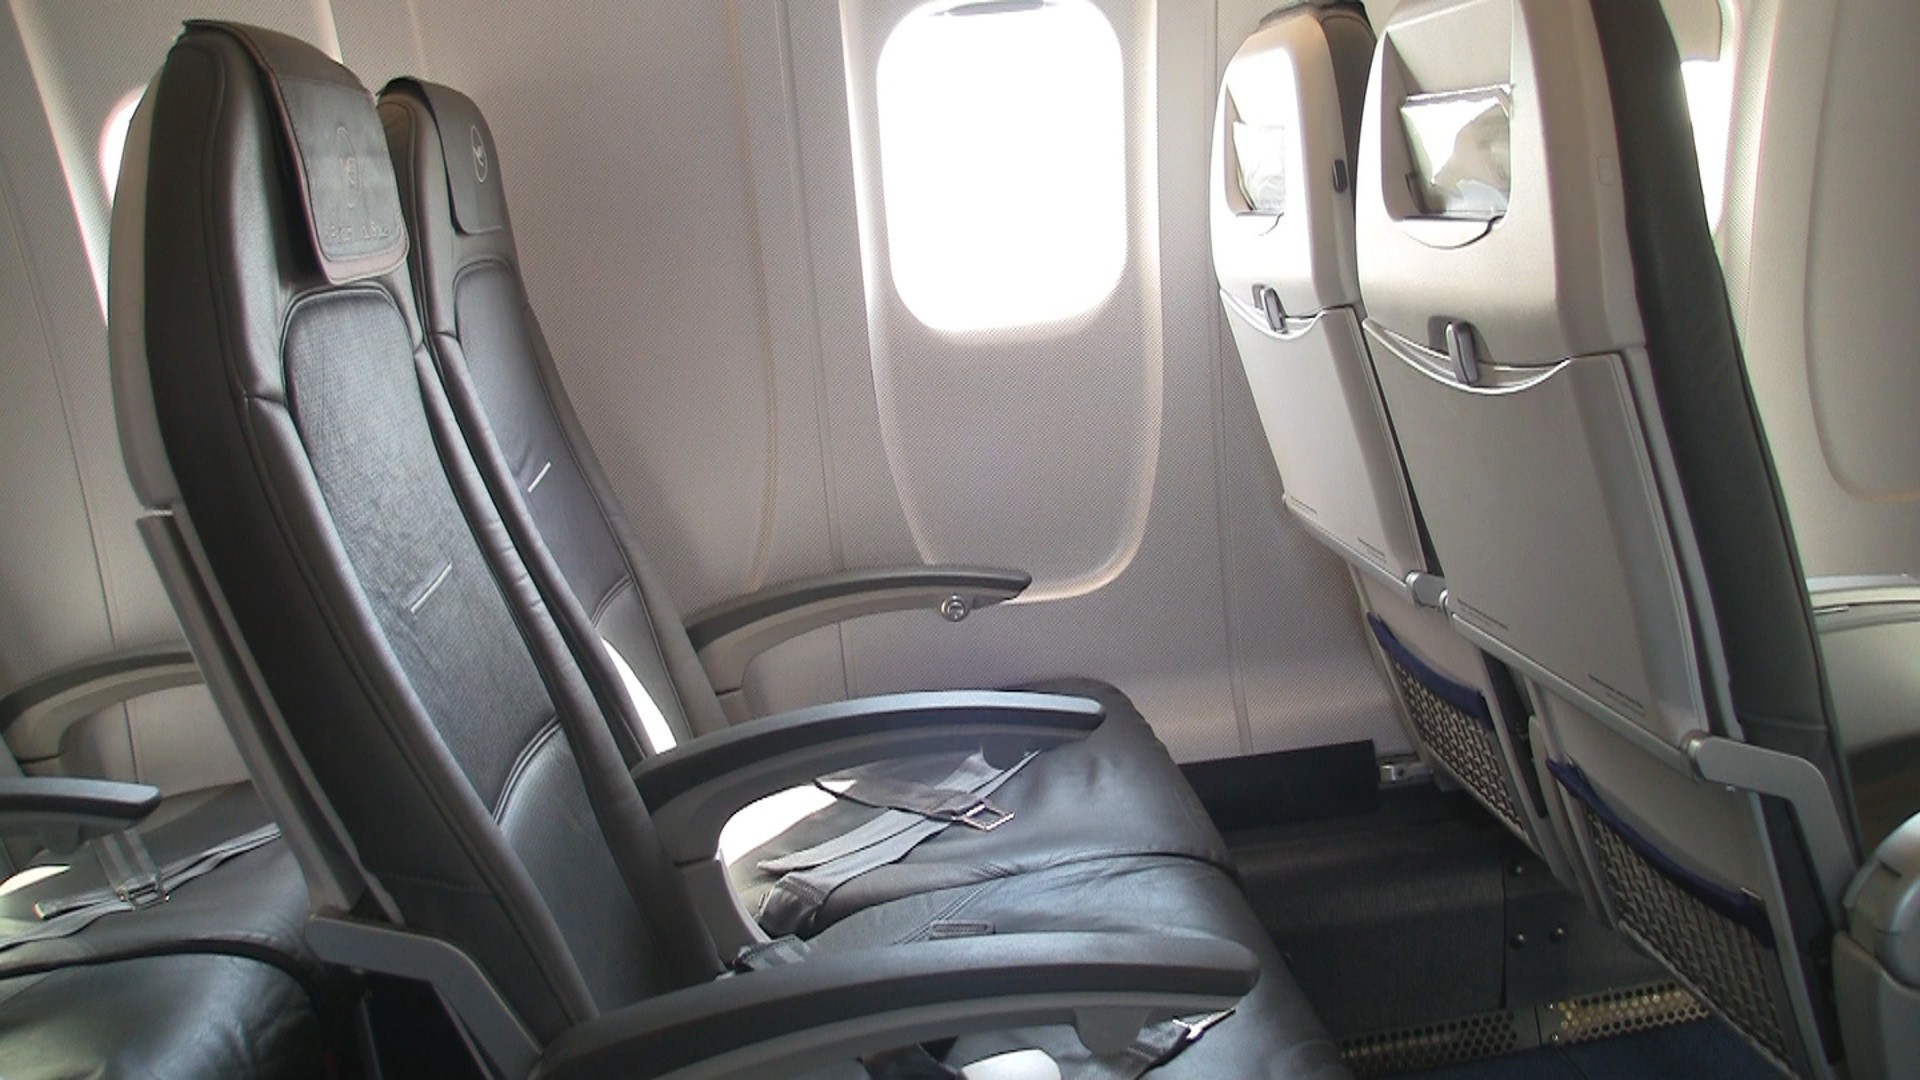 If your bags are overhead, you'll get more room to stretch in a non-bulkhead row.